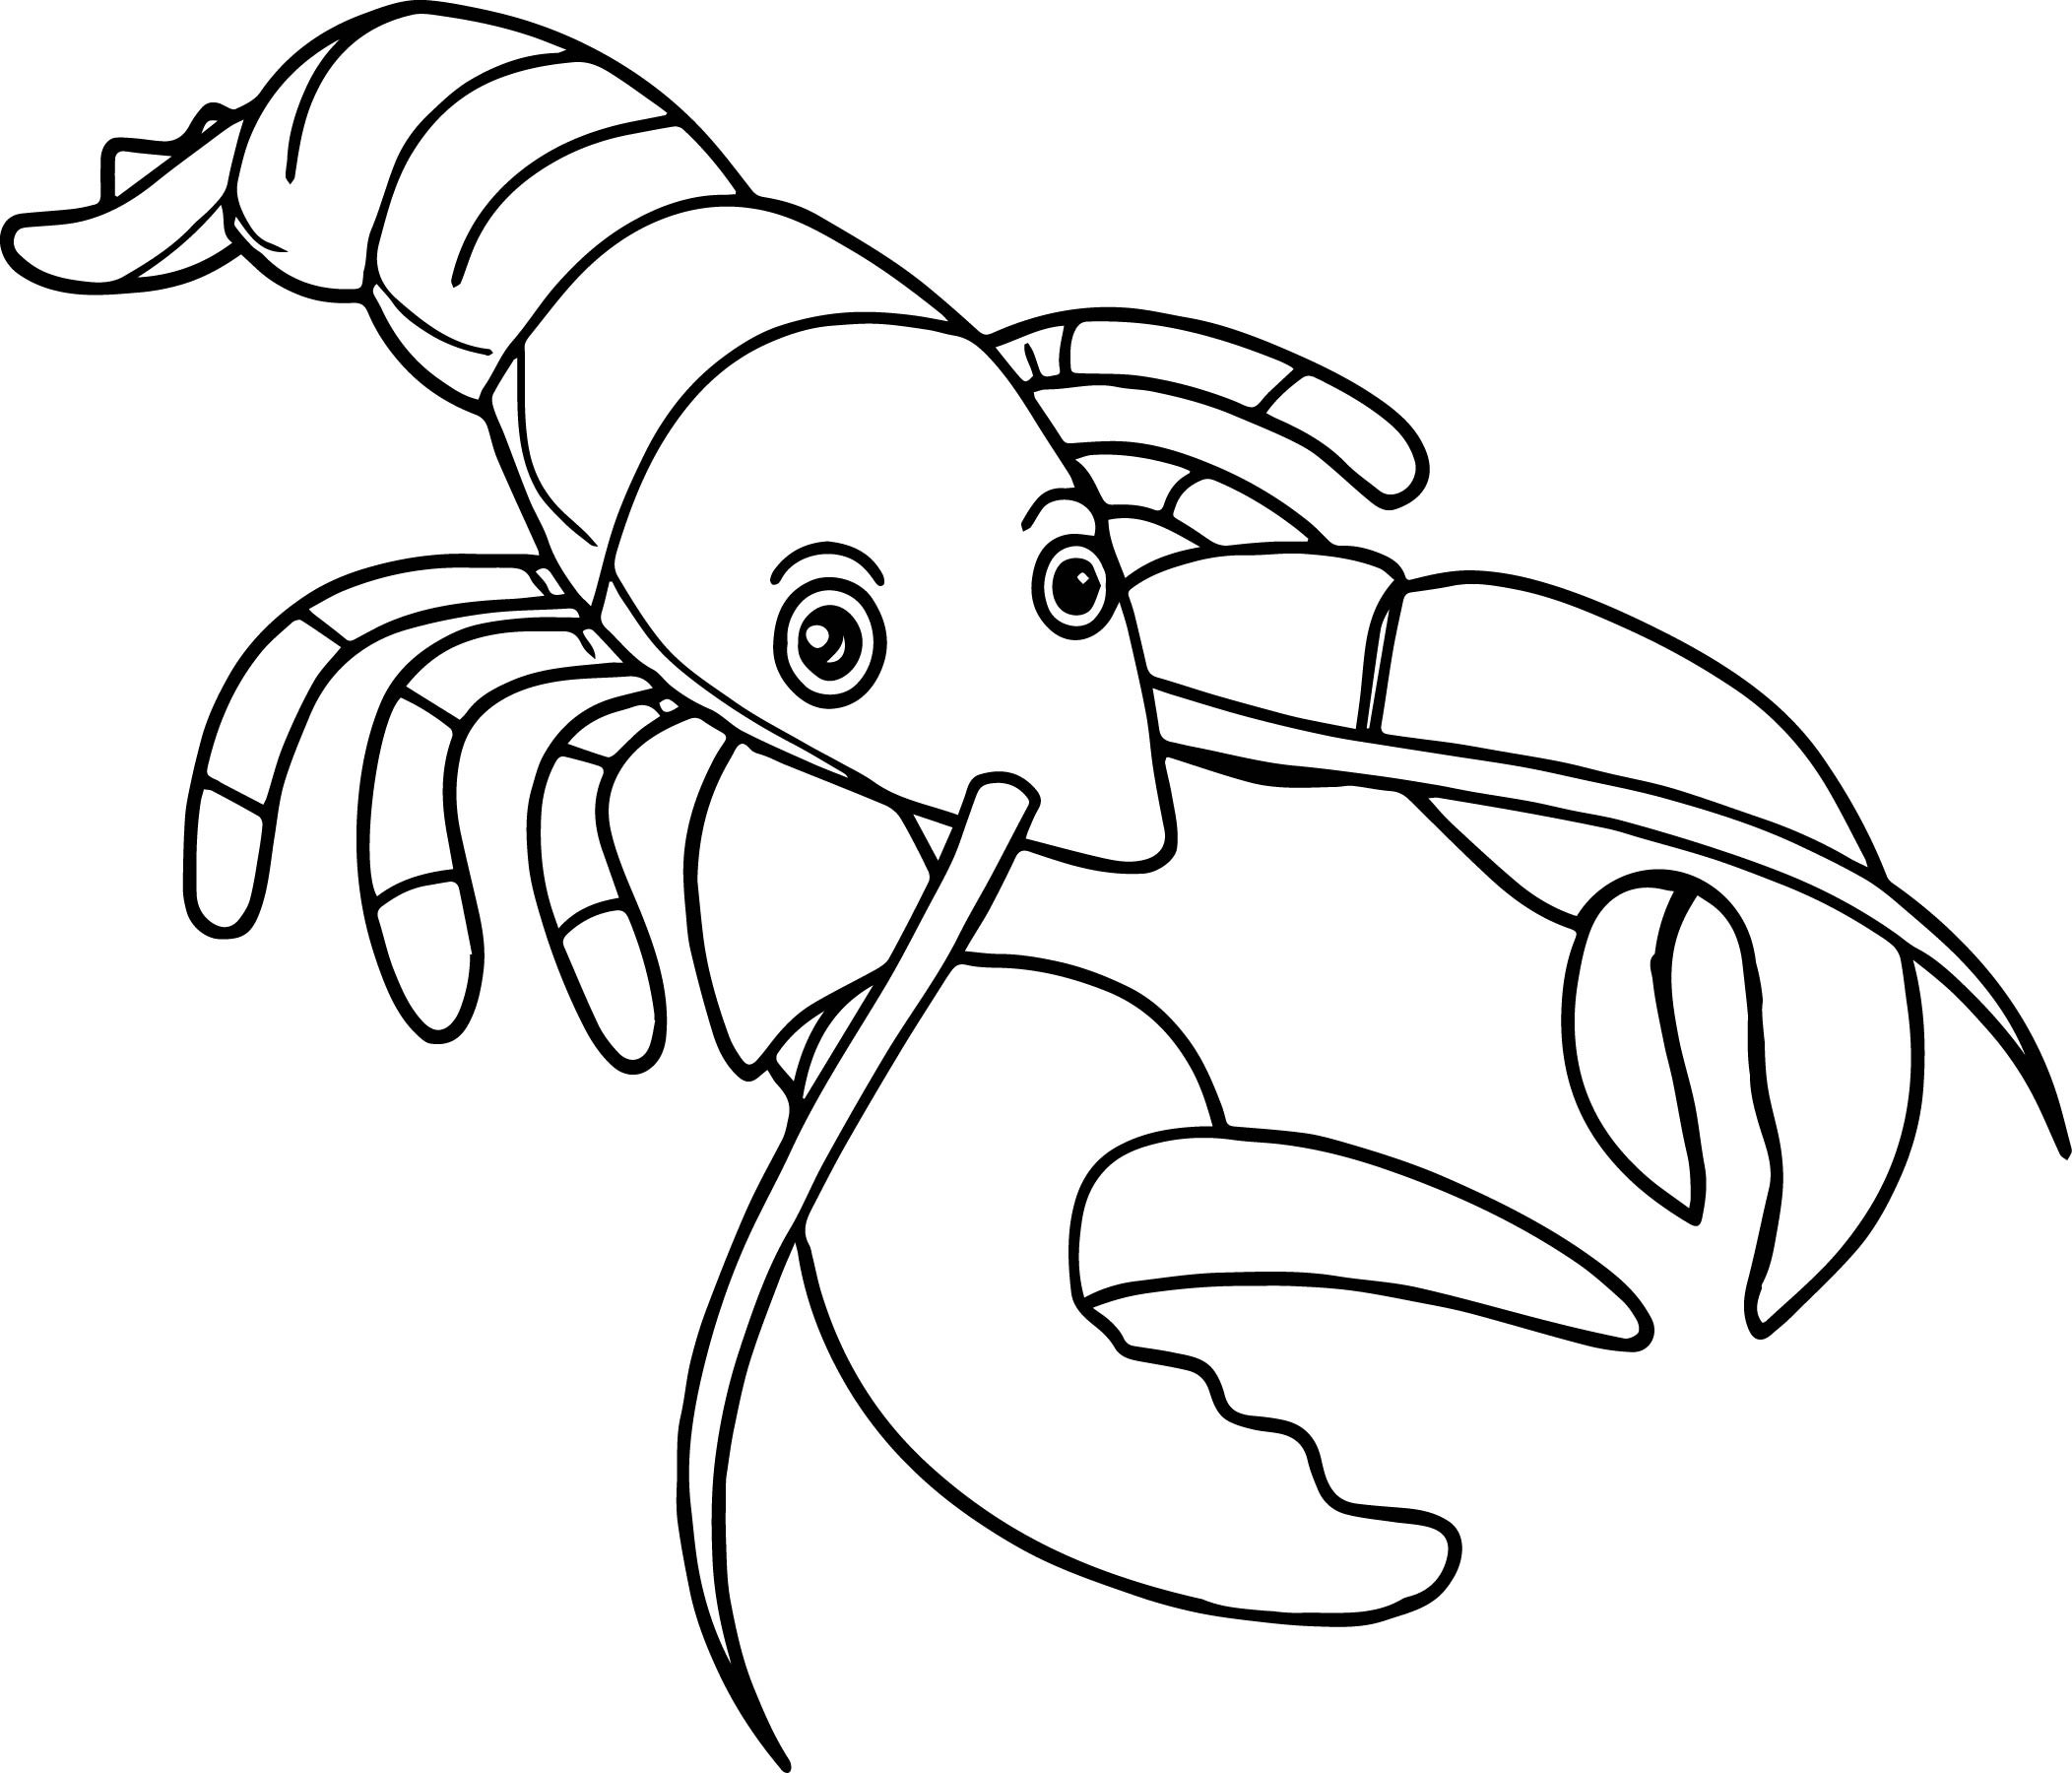 2104x1800 Lobster Sea Animals Coloring Pages For Kids Awesome Worksheets